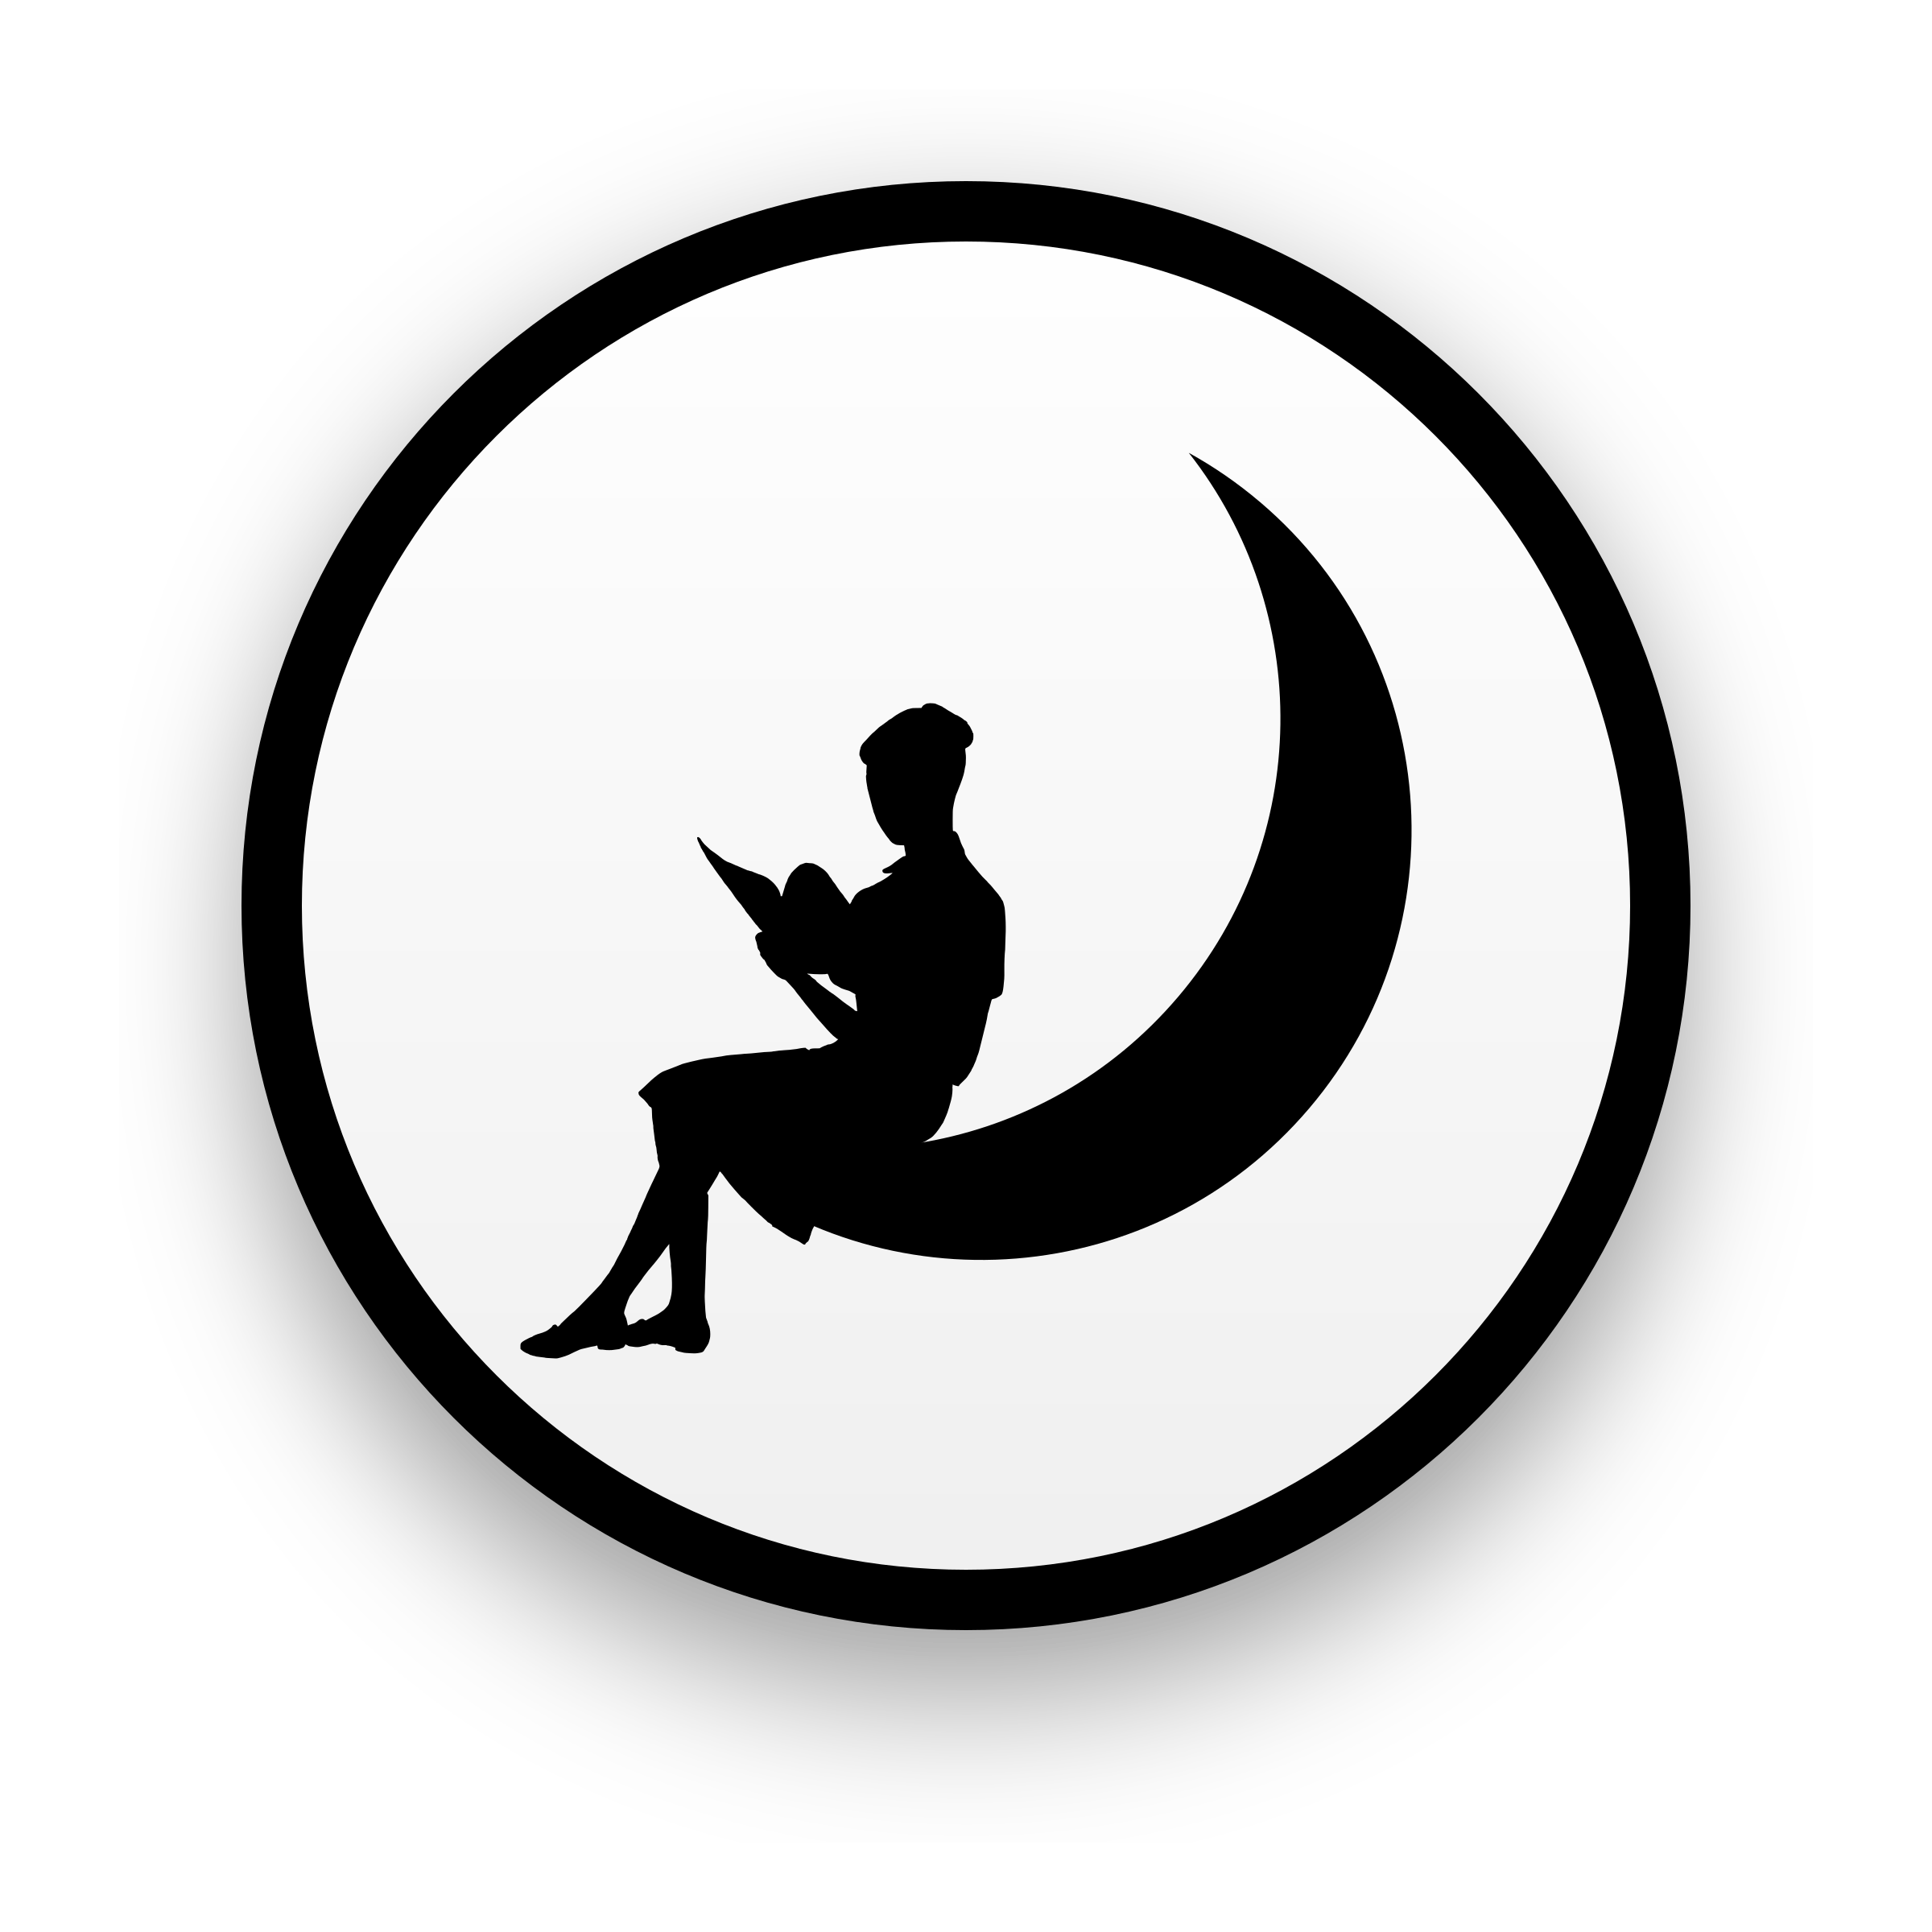 transparent stock Silhouette at getdrawings com. Moon clipart outline